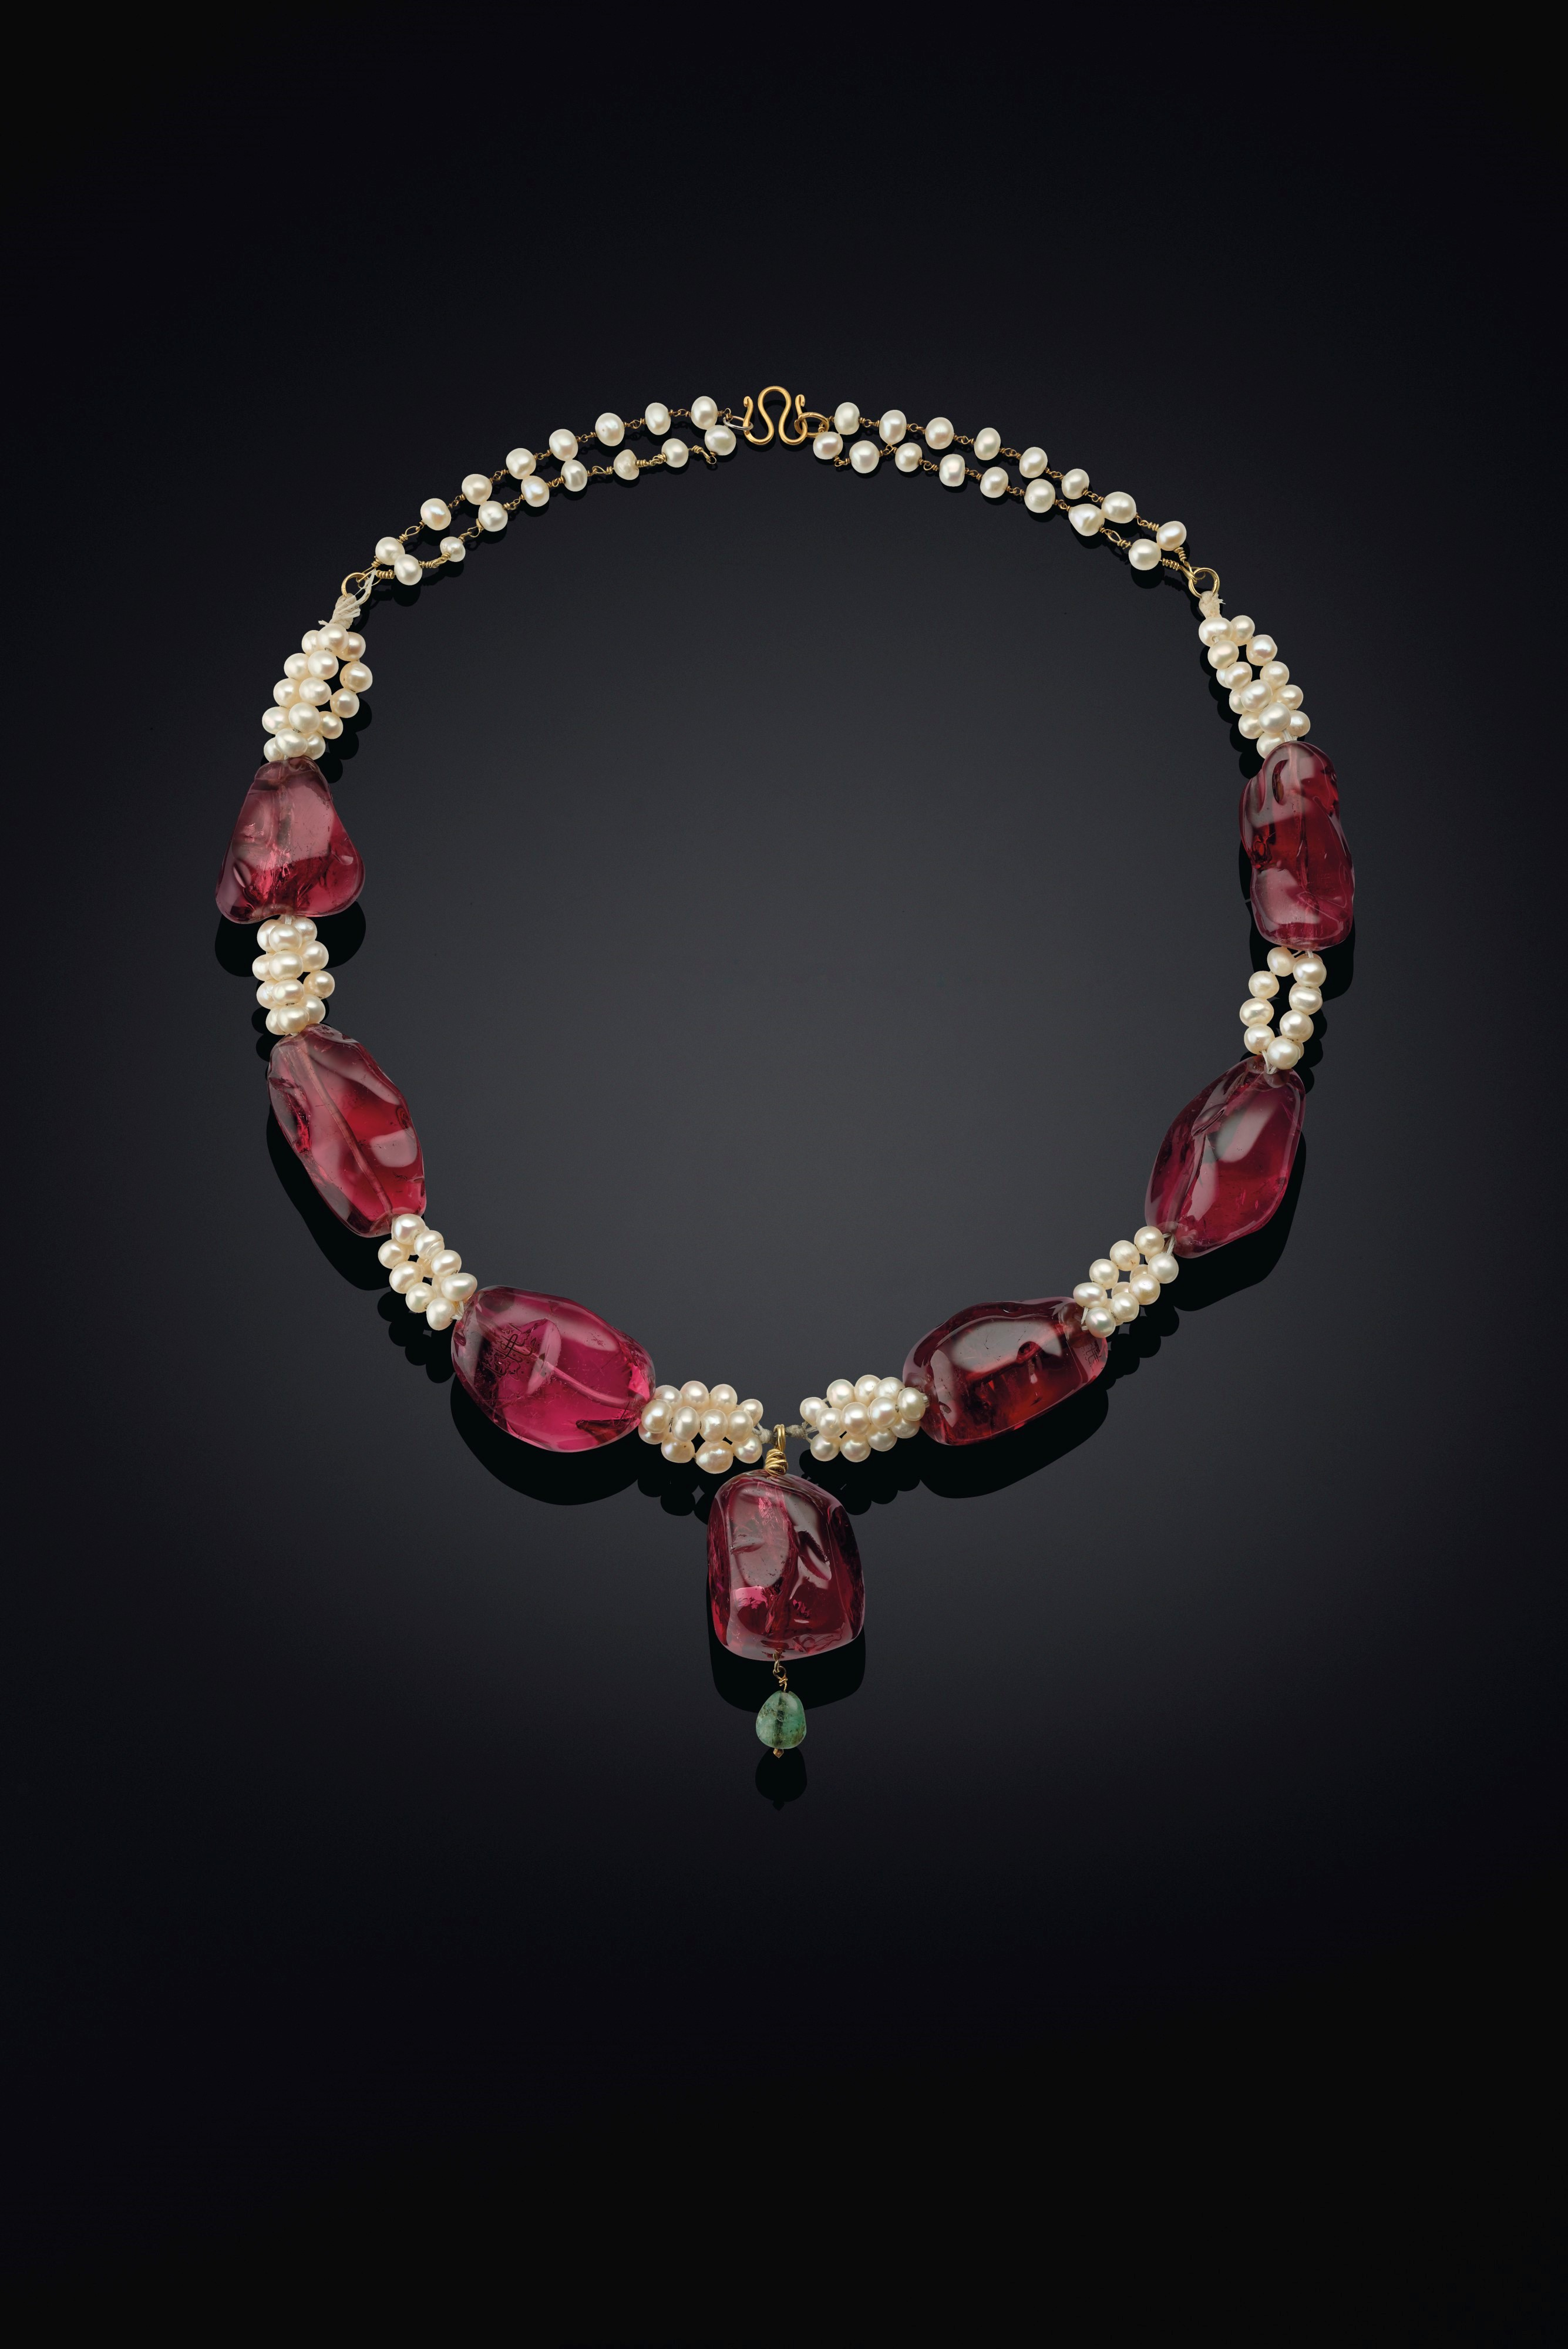 Tumbled spinel necklace recently sold by Christie's at their auction. Image credit: Christie's